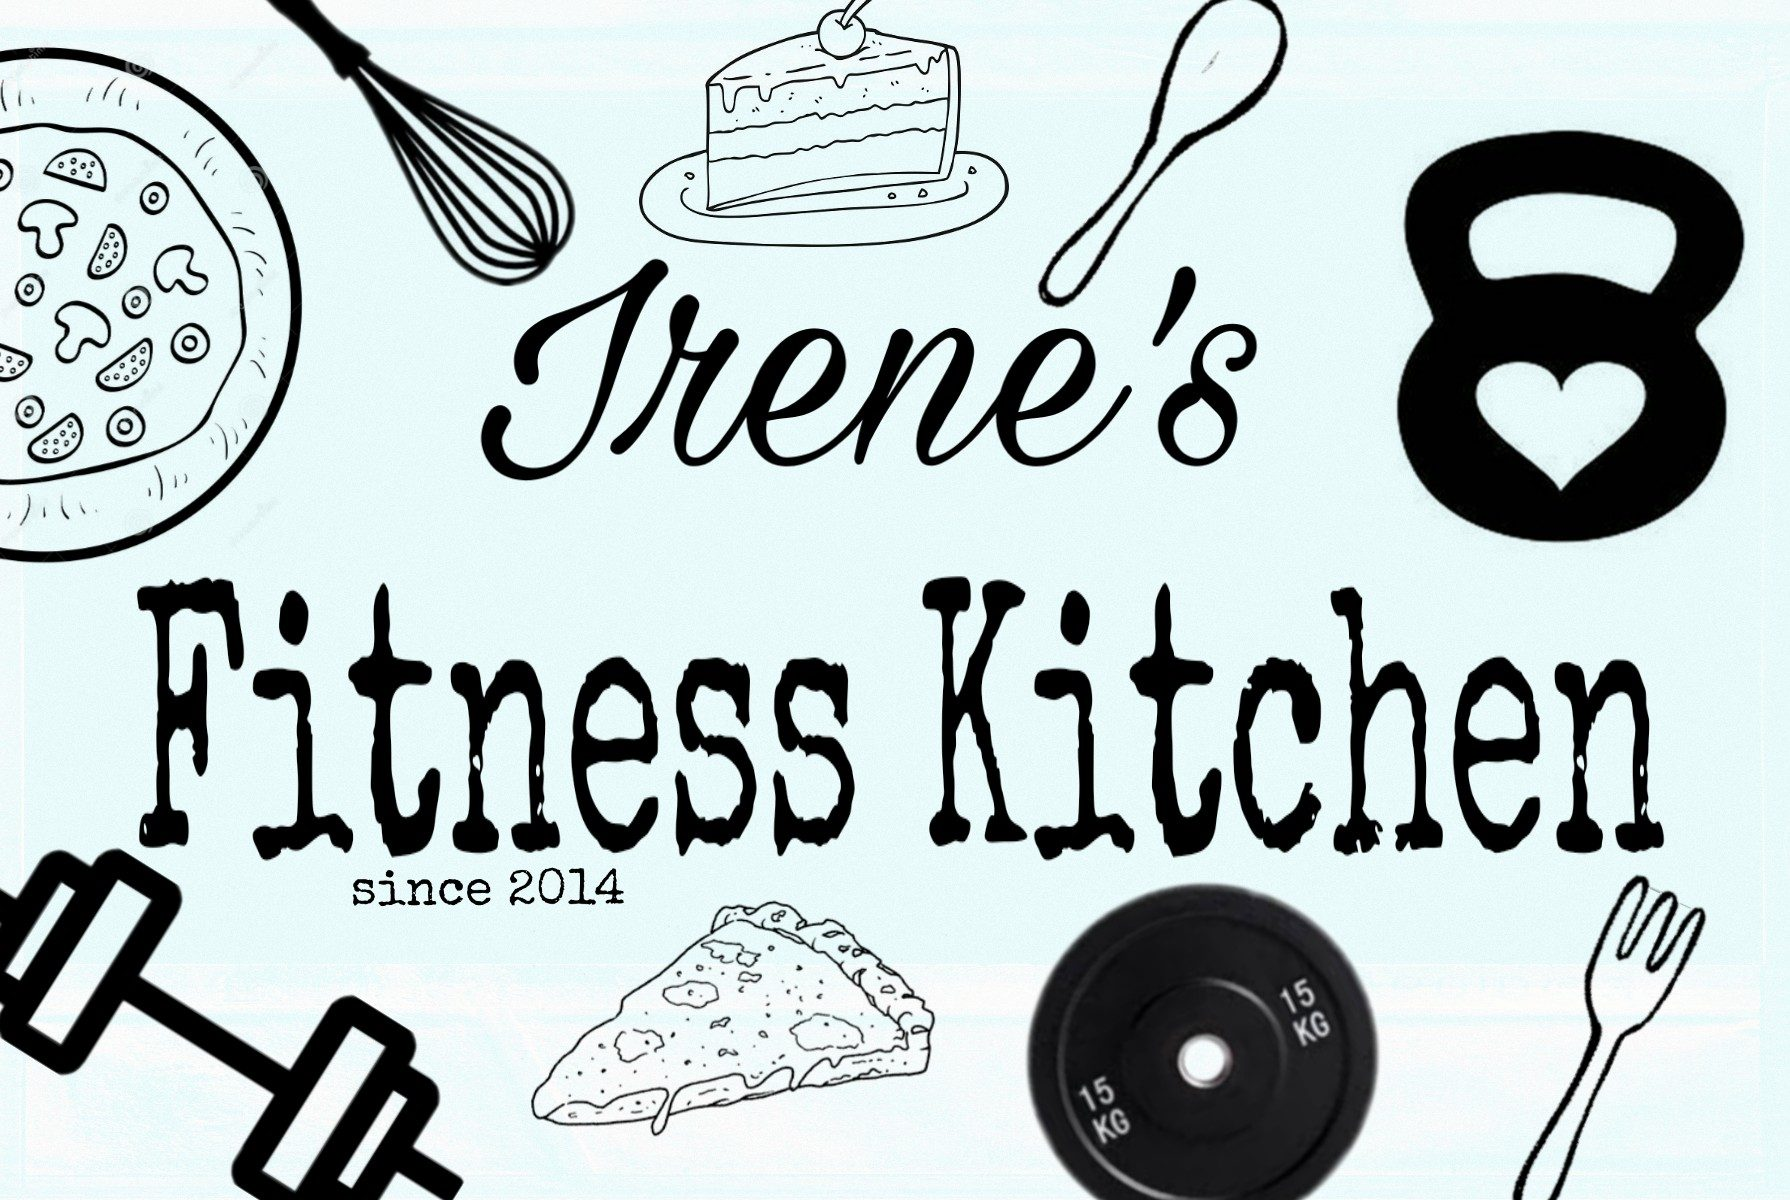 Irene's Fitness Kitchen